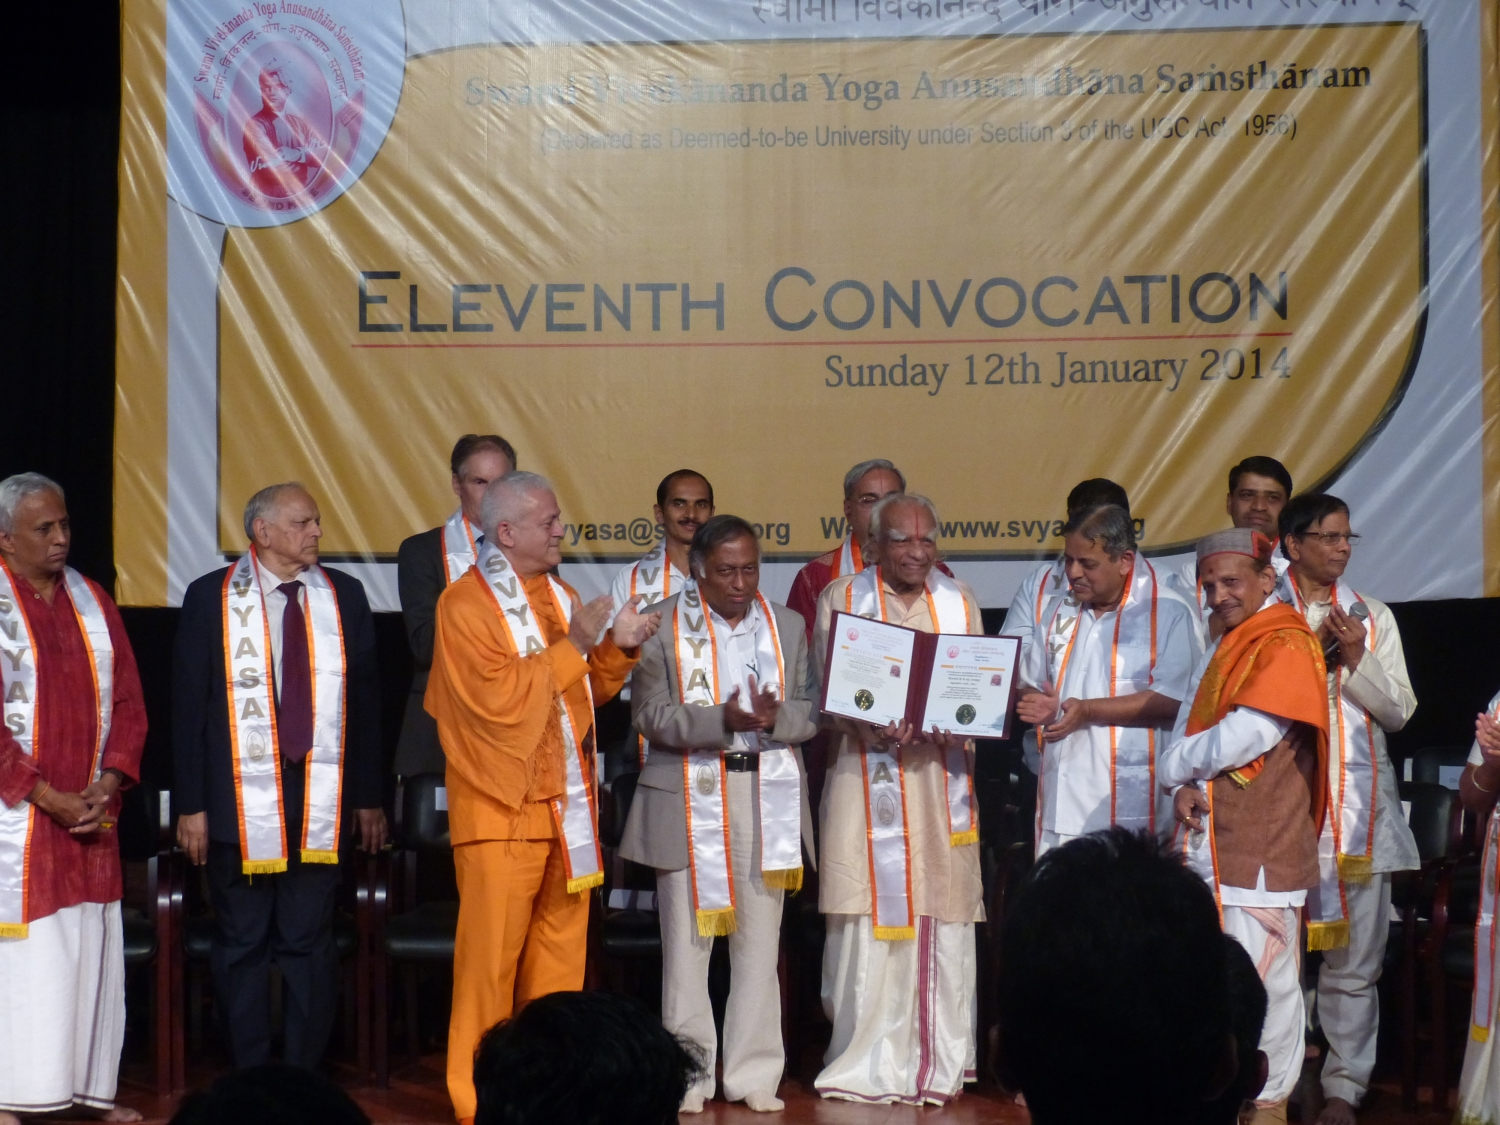 Delivery of the Honorary Doctorate (DLitte Degree) to the Yoga Guru Amrta Súryánanda Mahá Rája by the University of Bengaluru, S-Vyása - 2014, January, 12th